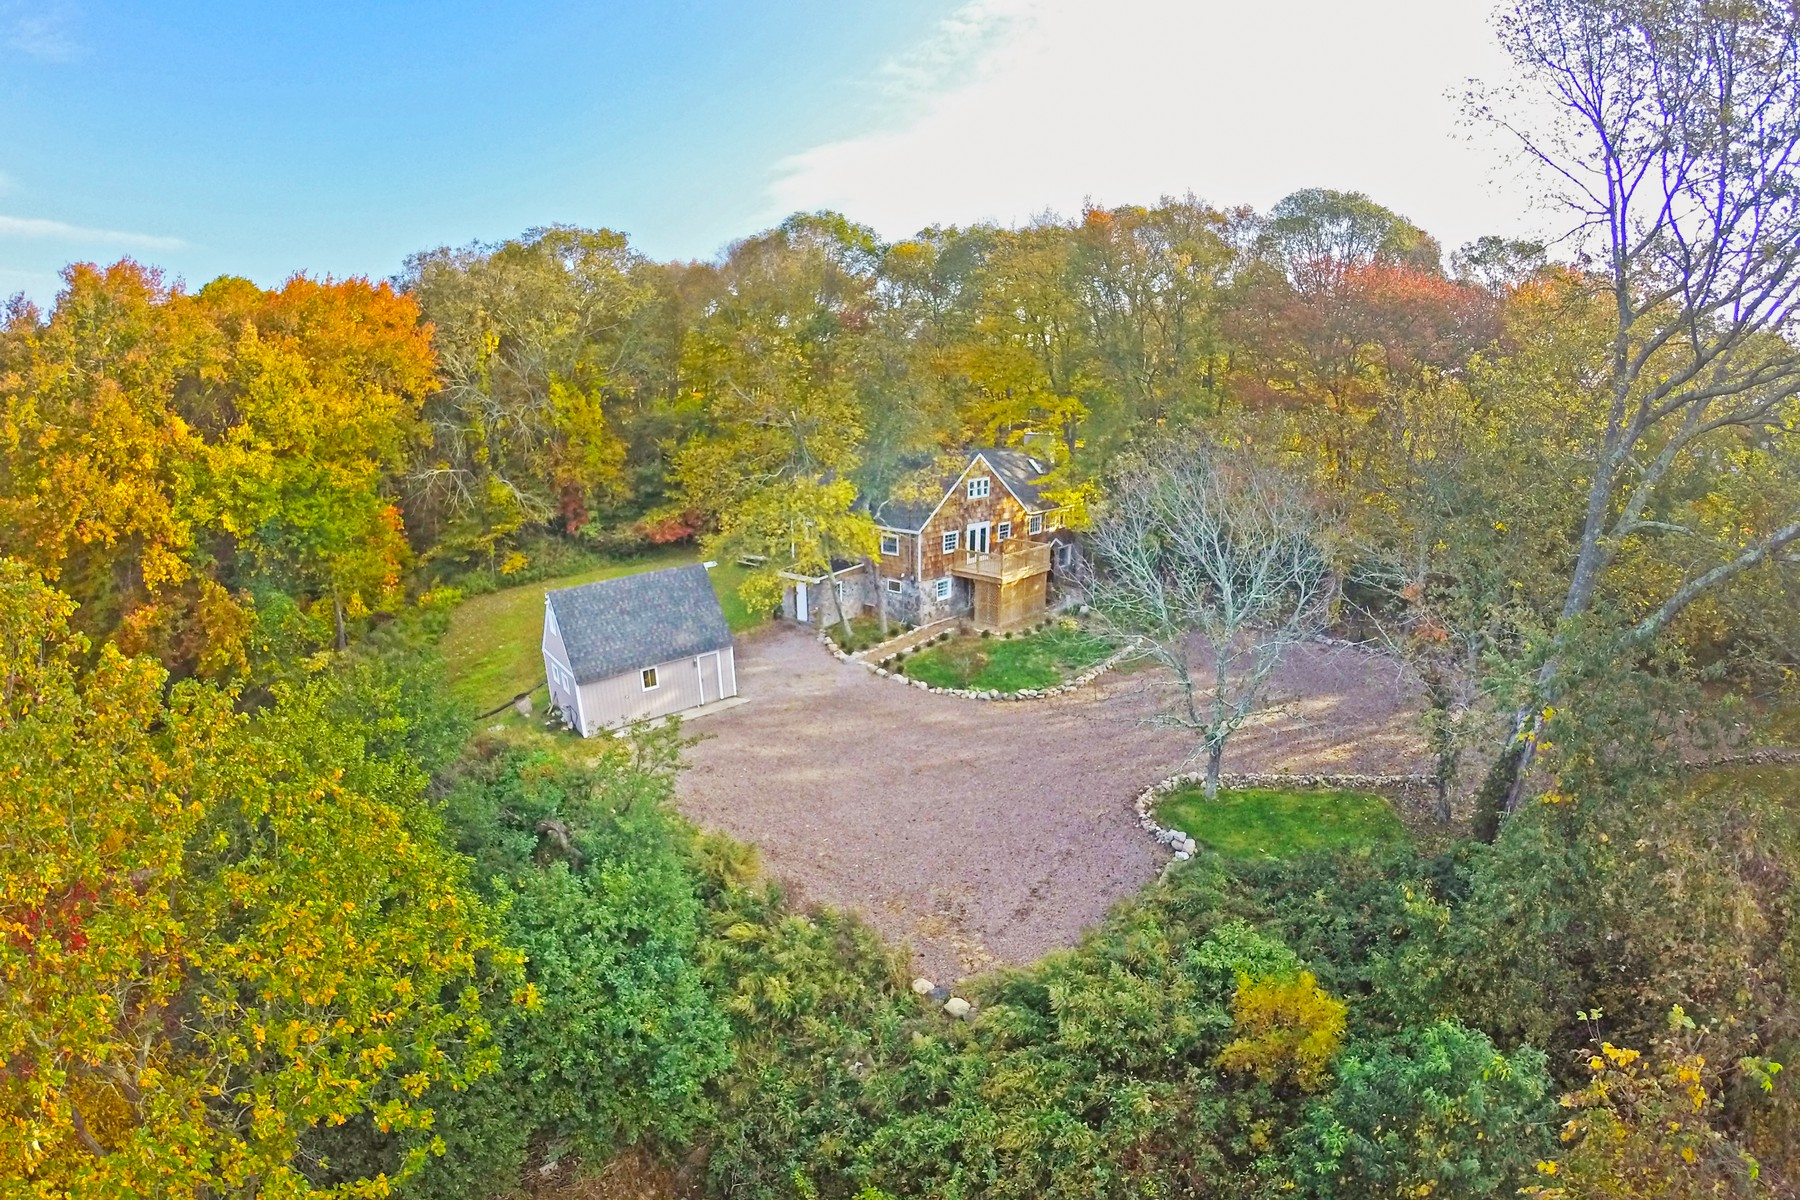 Single Family Home for Sale at Unique Property With In-Law Apartment 237 Taugwonk Rd Stonington, Connecticut, 06378 United States